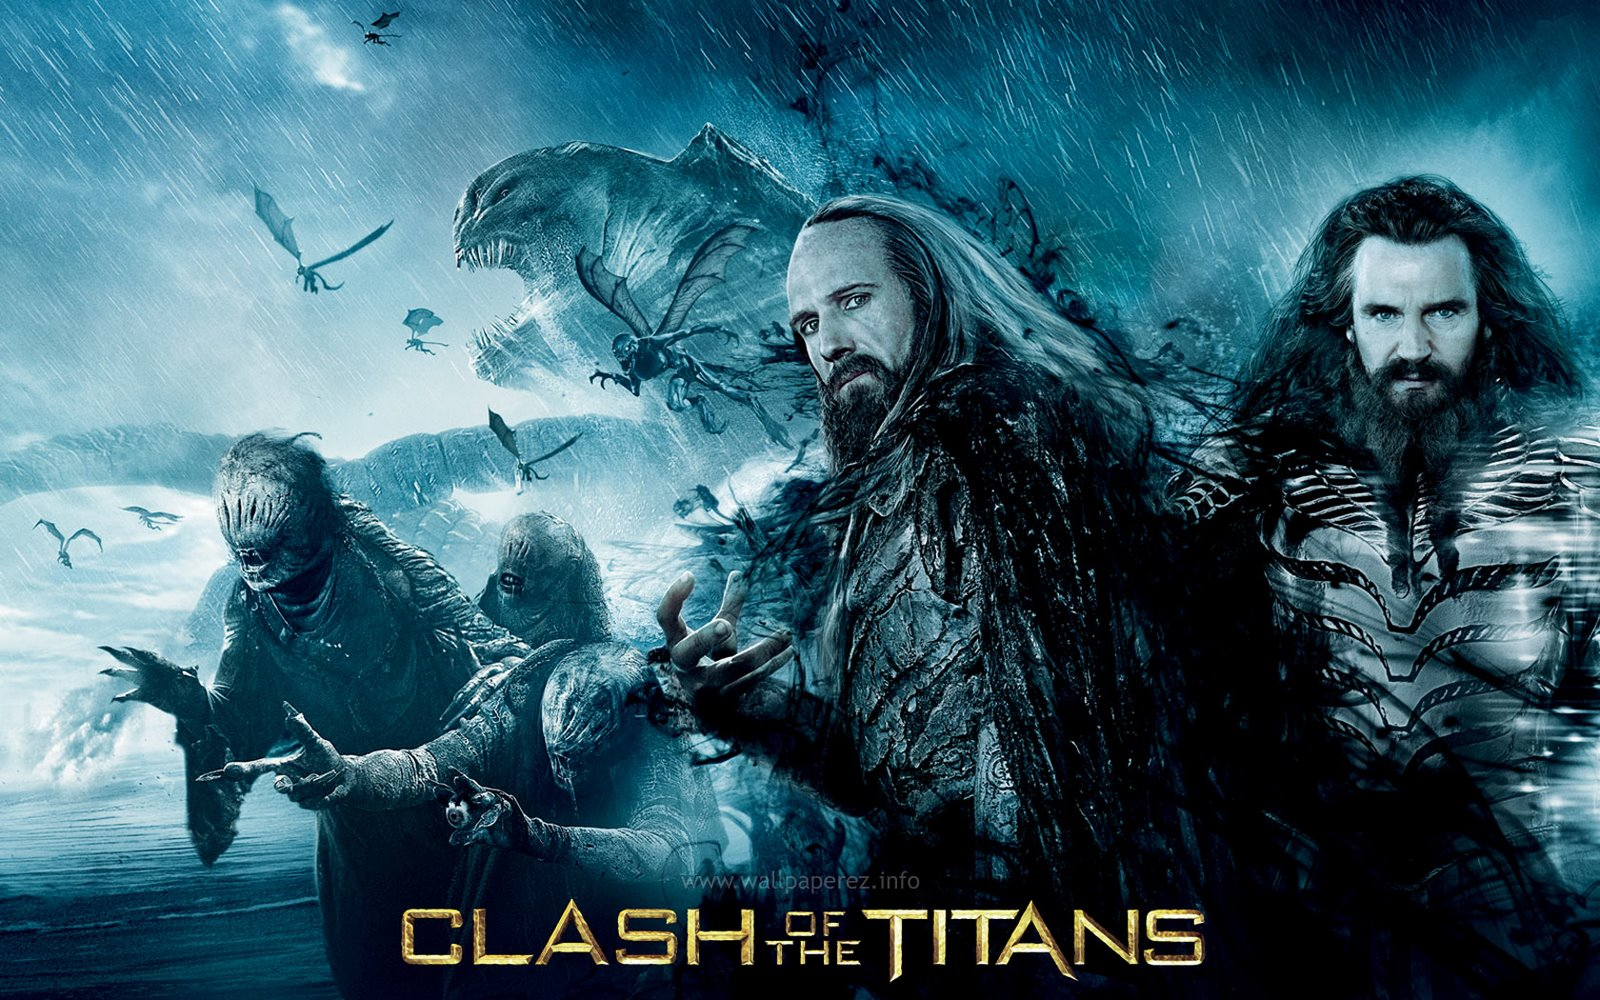 http://1.bp.blogspot.com/_rhrvnb_-SMk/S8YlmTpnDyI/AAAAAAAADas/PVsbOC5ziIc/s1600/Clash-of-the-Titans-movie-wallpaper-2044.jpg